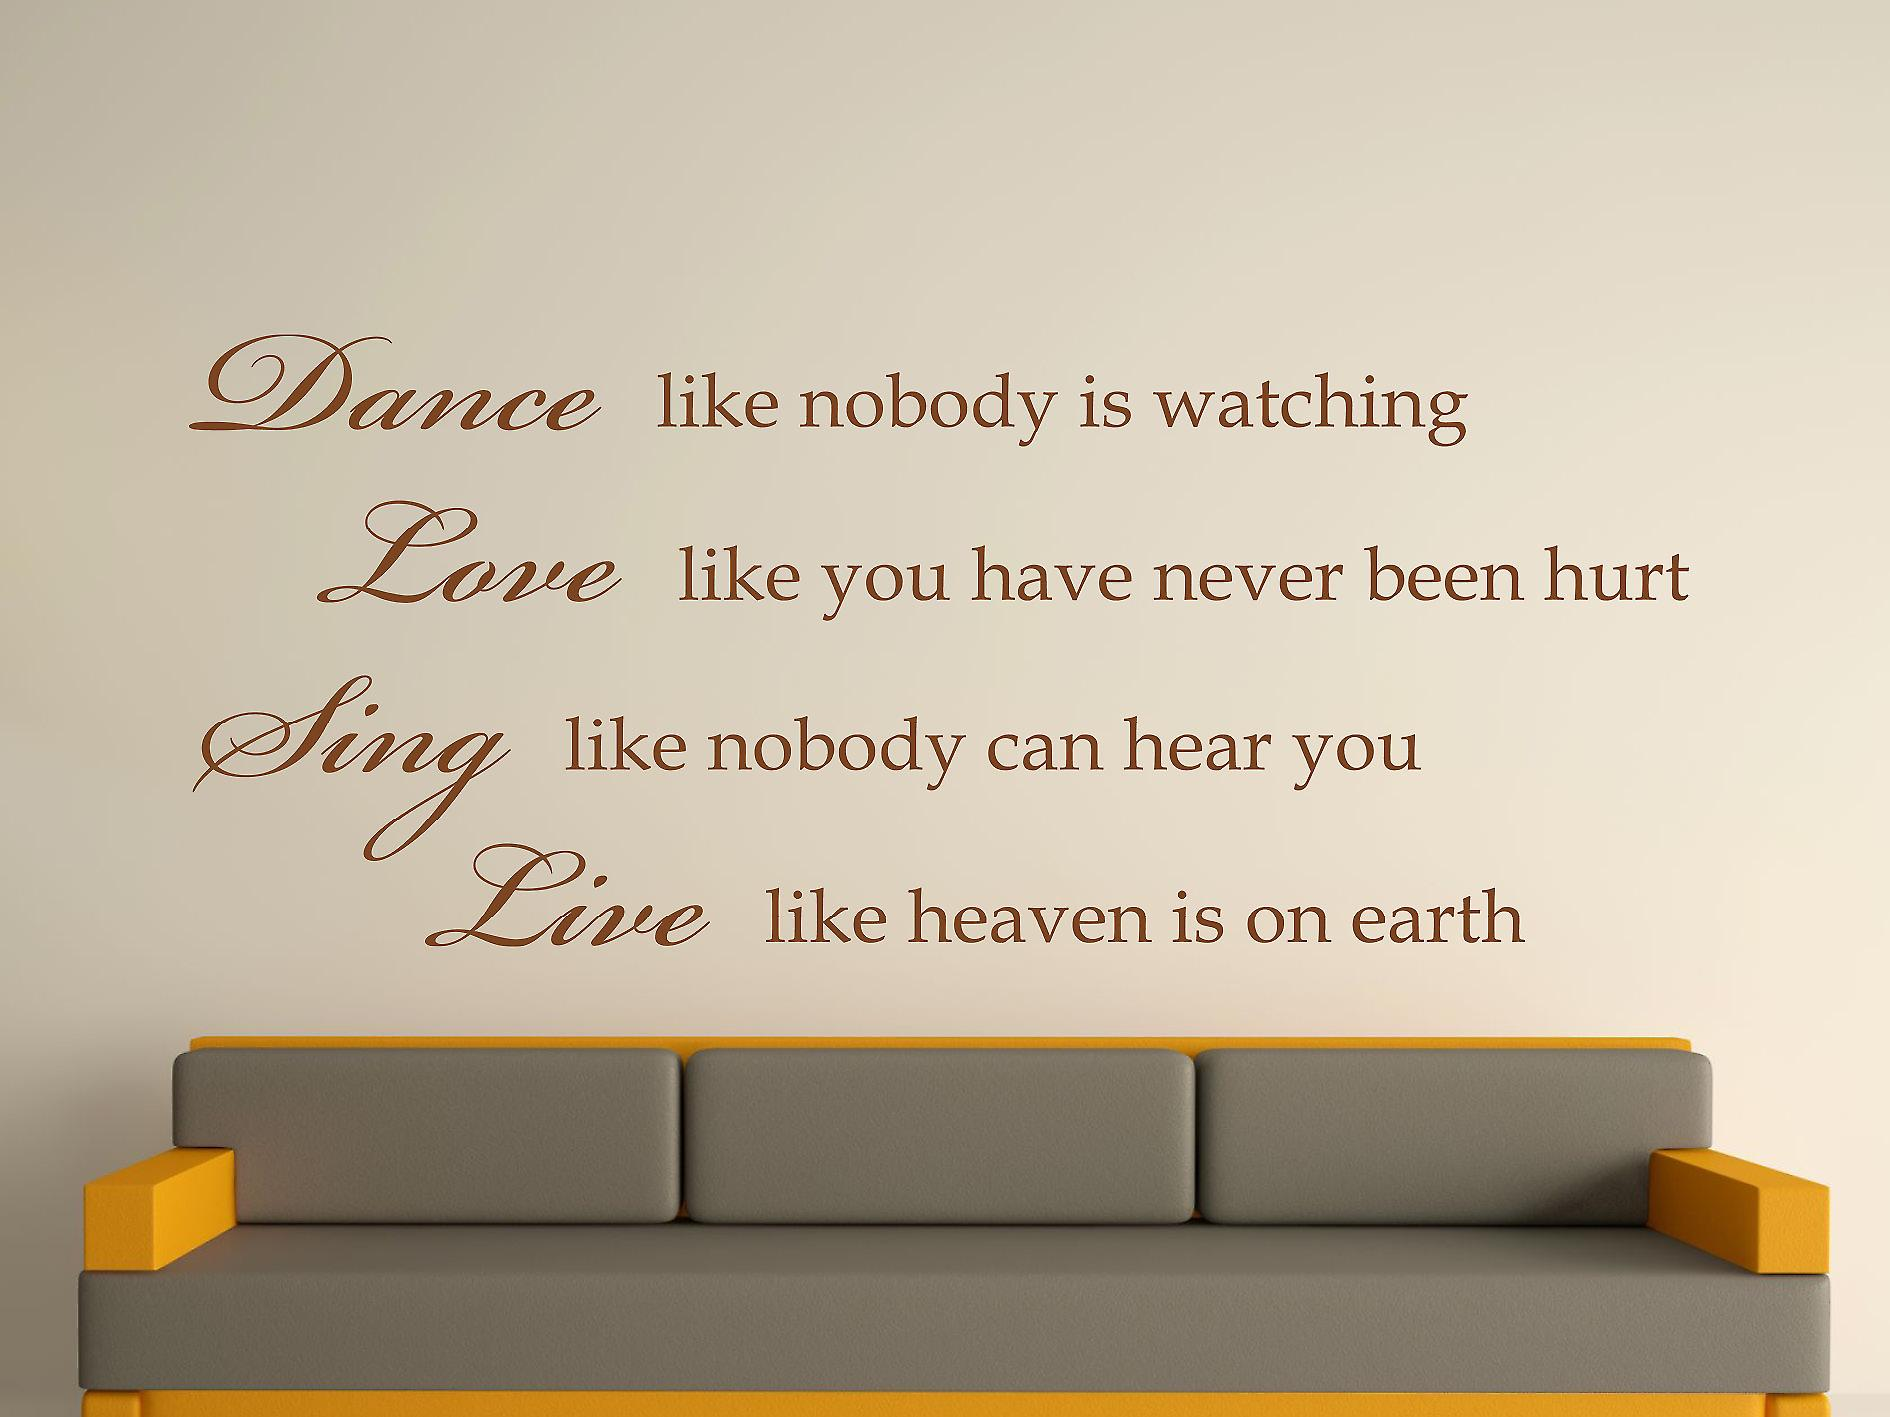 Dance Like Nobody Is Watching Wall Art Sticker - Brown